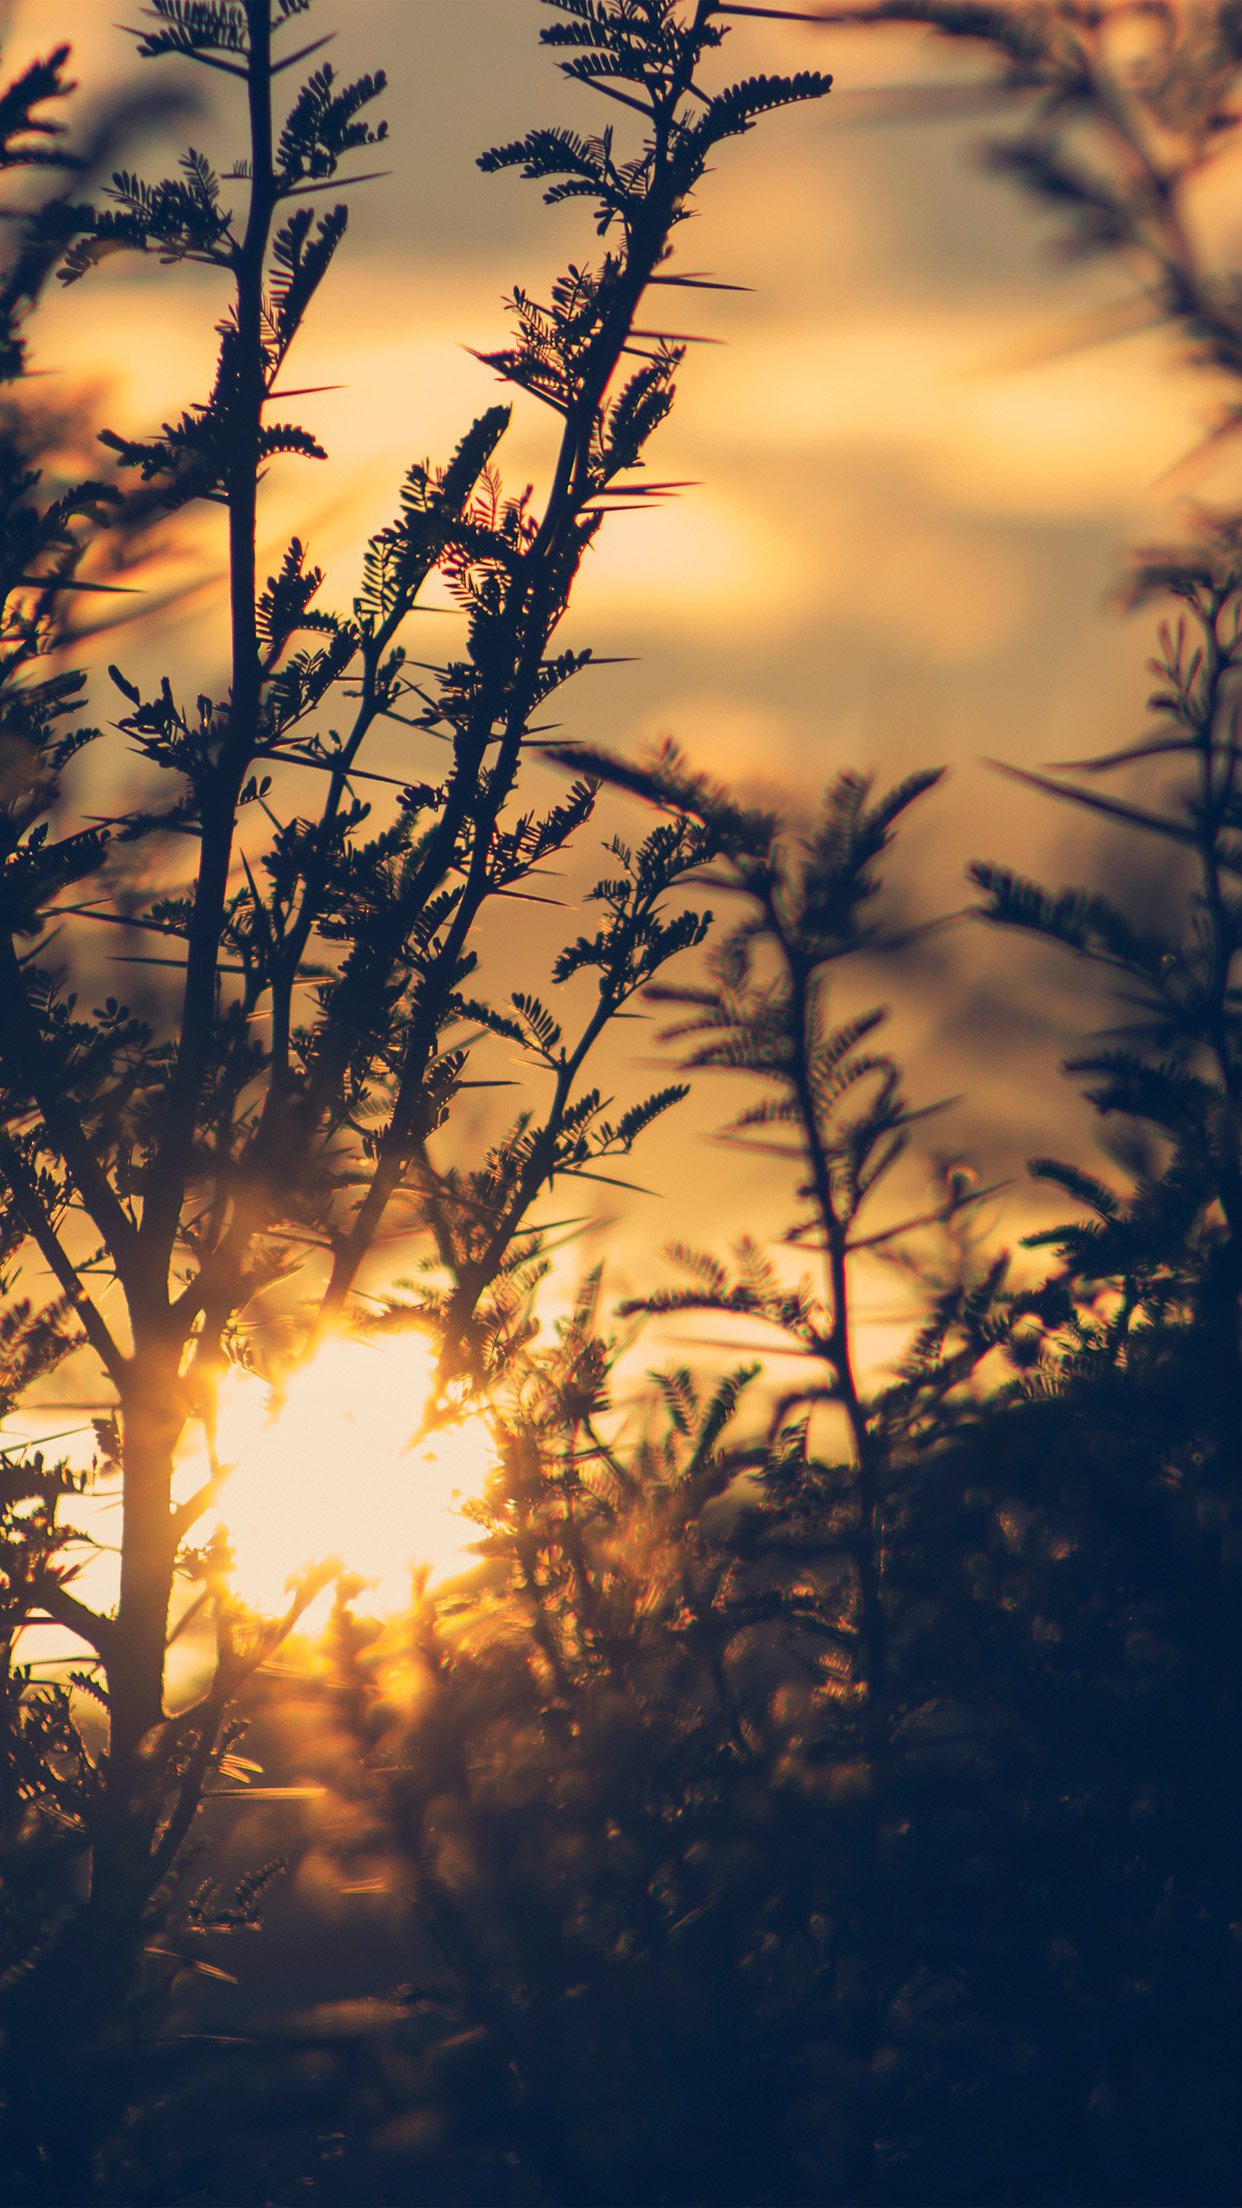 Sunset Tree Light Flare Bokeh Nature Photo Android wallpaper